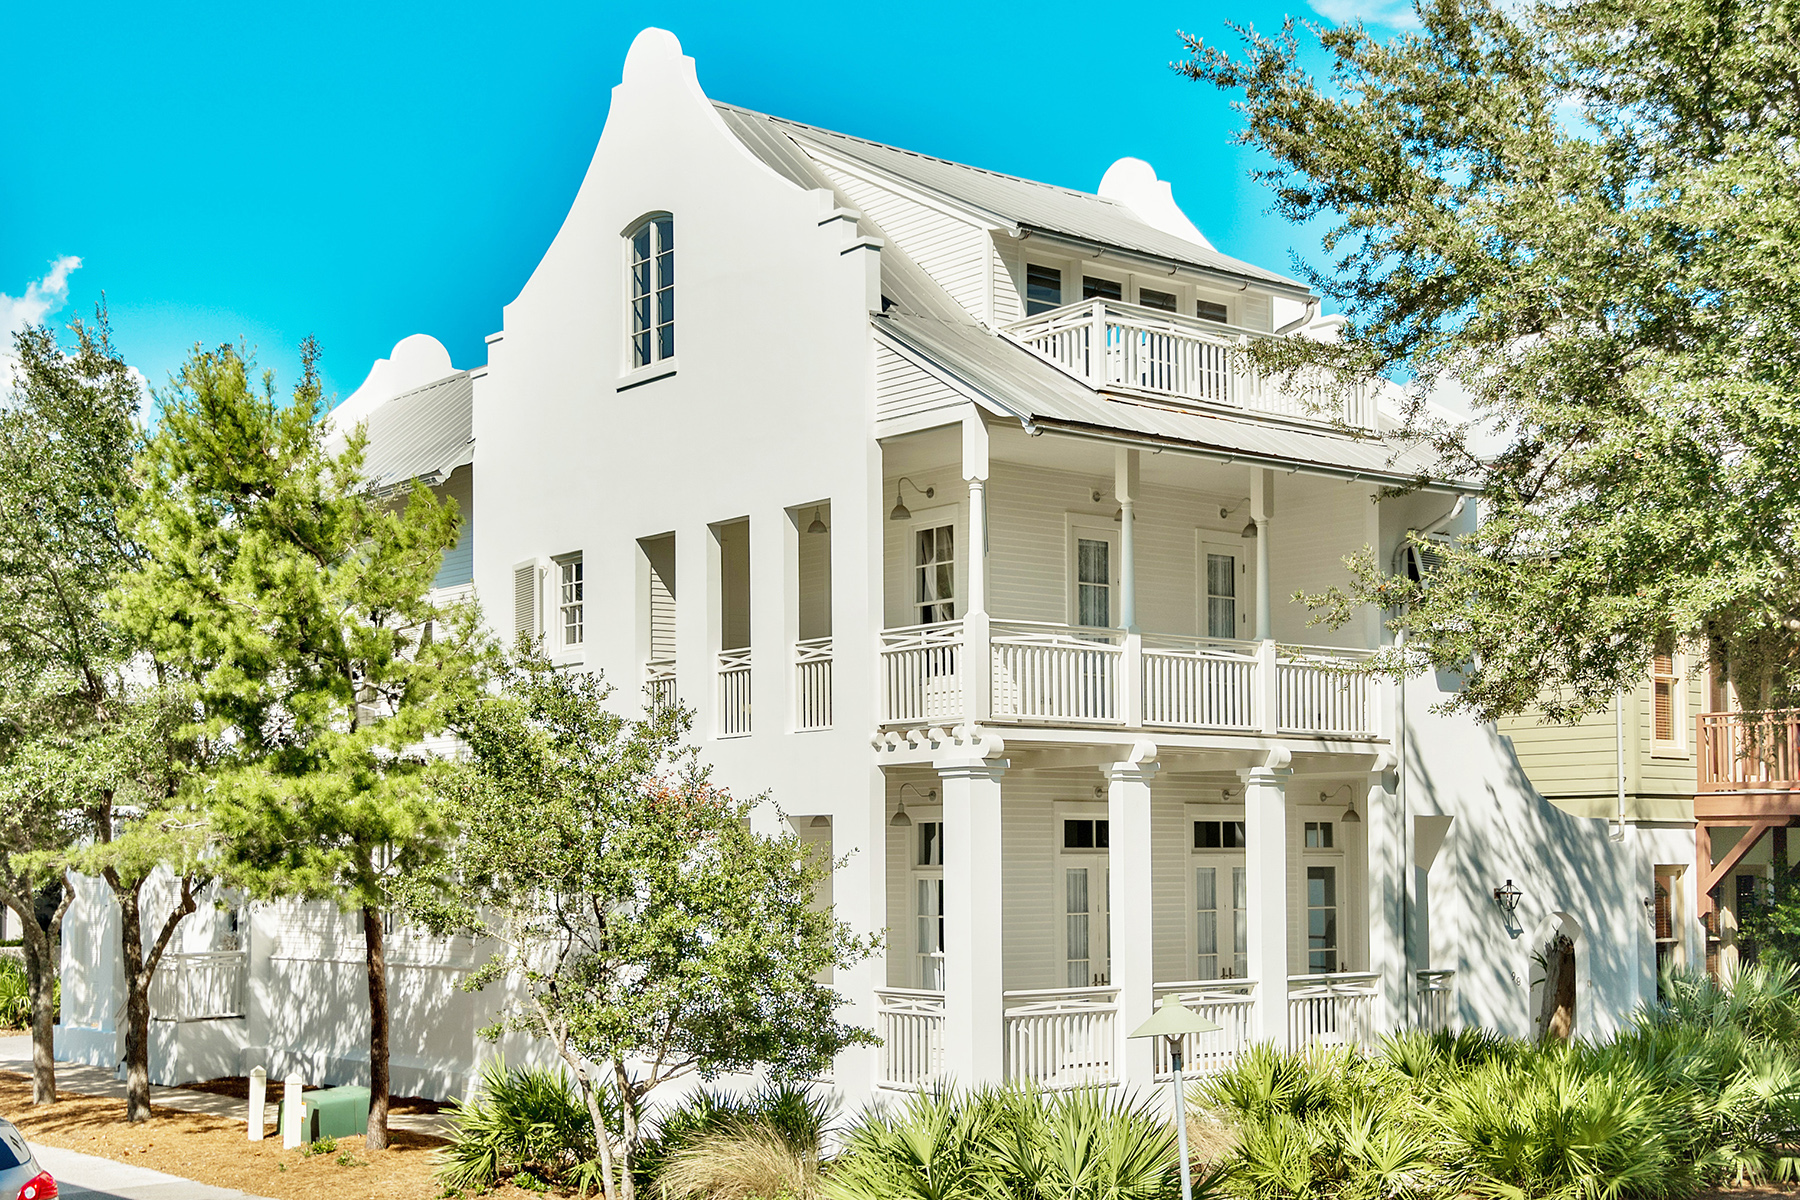 단독 가정 주택 용 매매 에 CLASSIC COURTYARD HOME WITH POOL IDEALLY LOCATED IN ROSEMARY BEACH 98 W Long Green Road Rosemary Beach, Rosemary Beach, 플로리다, 32461 미국